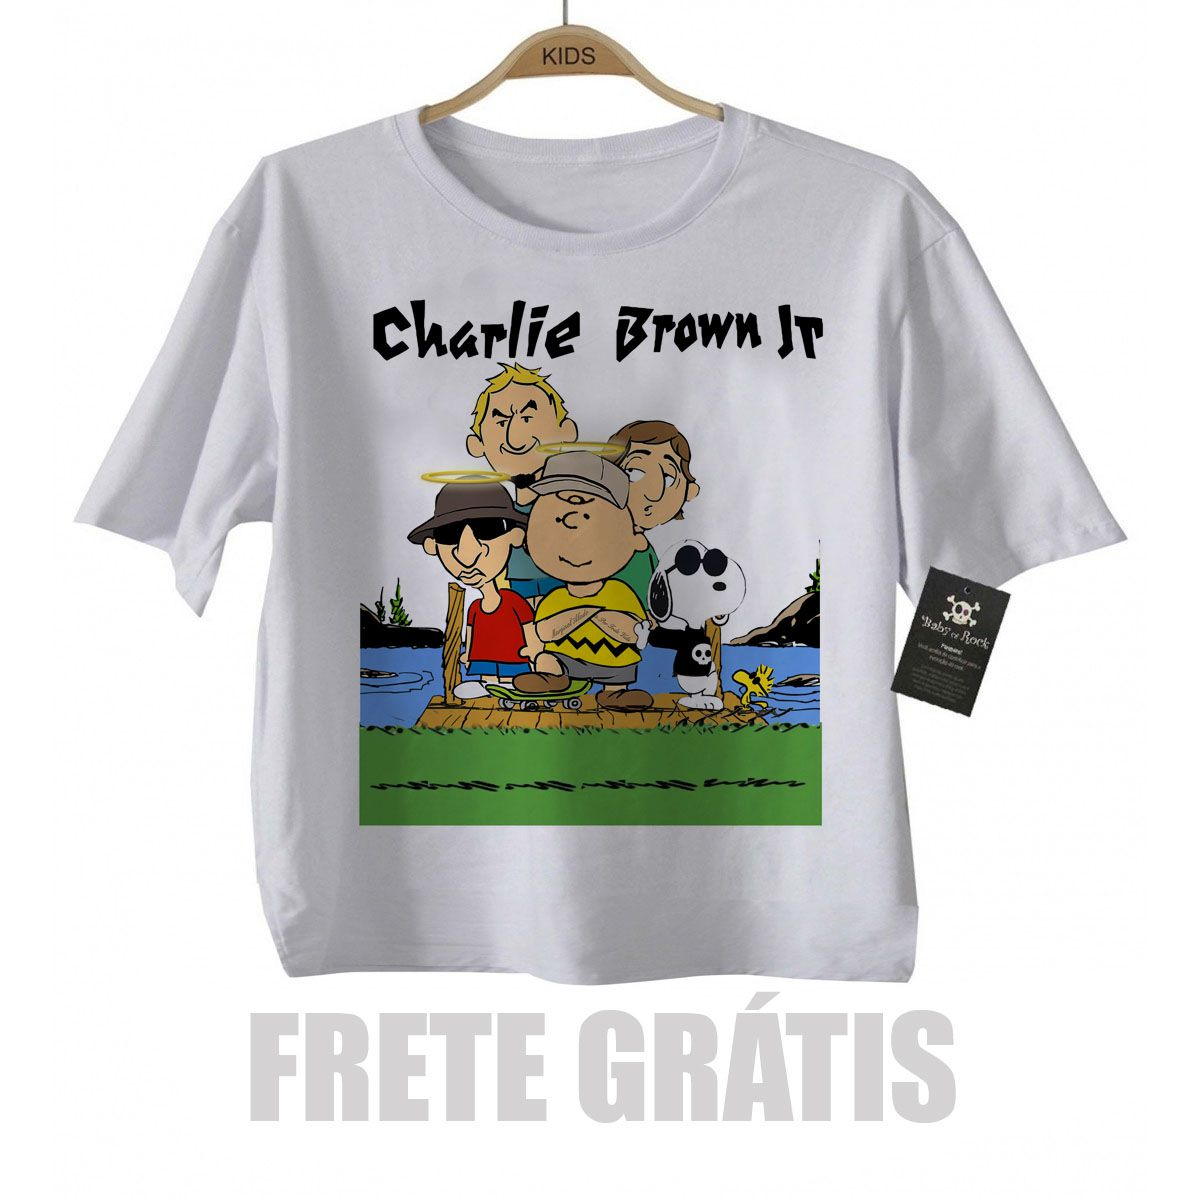 Camiseta de Rock Infantil  Charlie Brown JR  Snoppy - White  - Baby Monster S/A